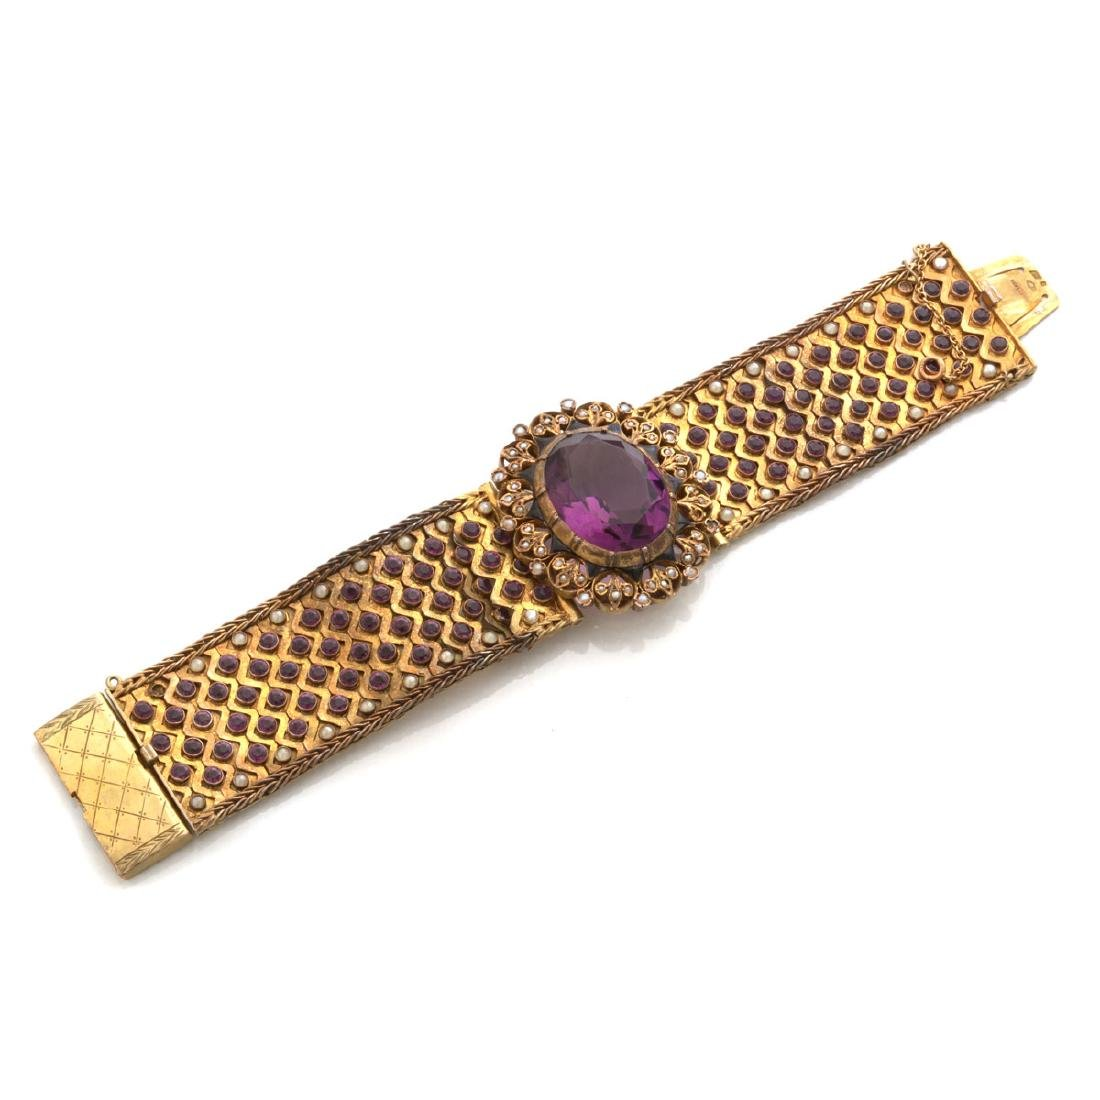 Hungarian Purple Glass, Seed Pearl, Enamel, Silver-Gilt